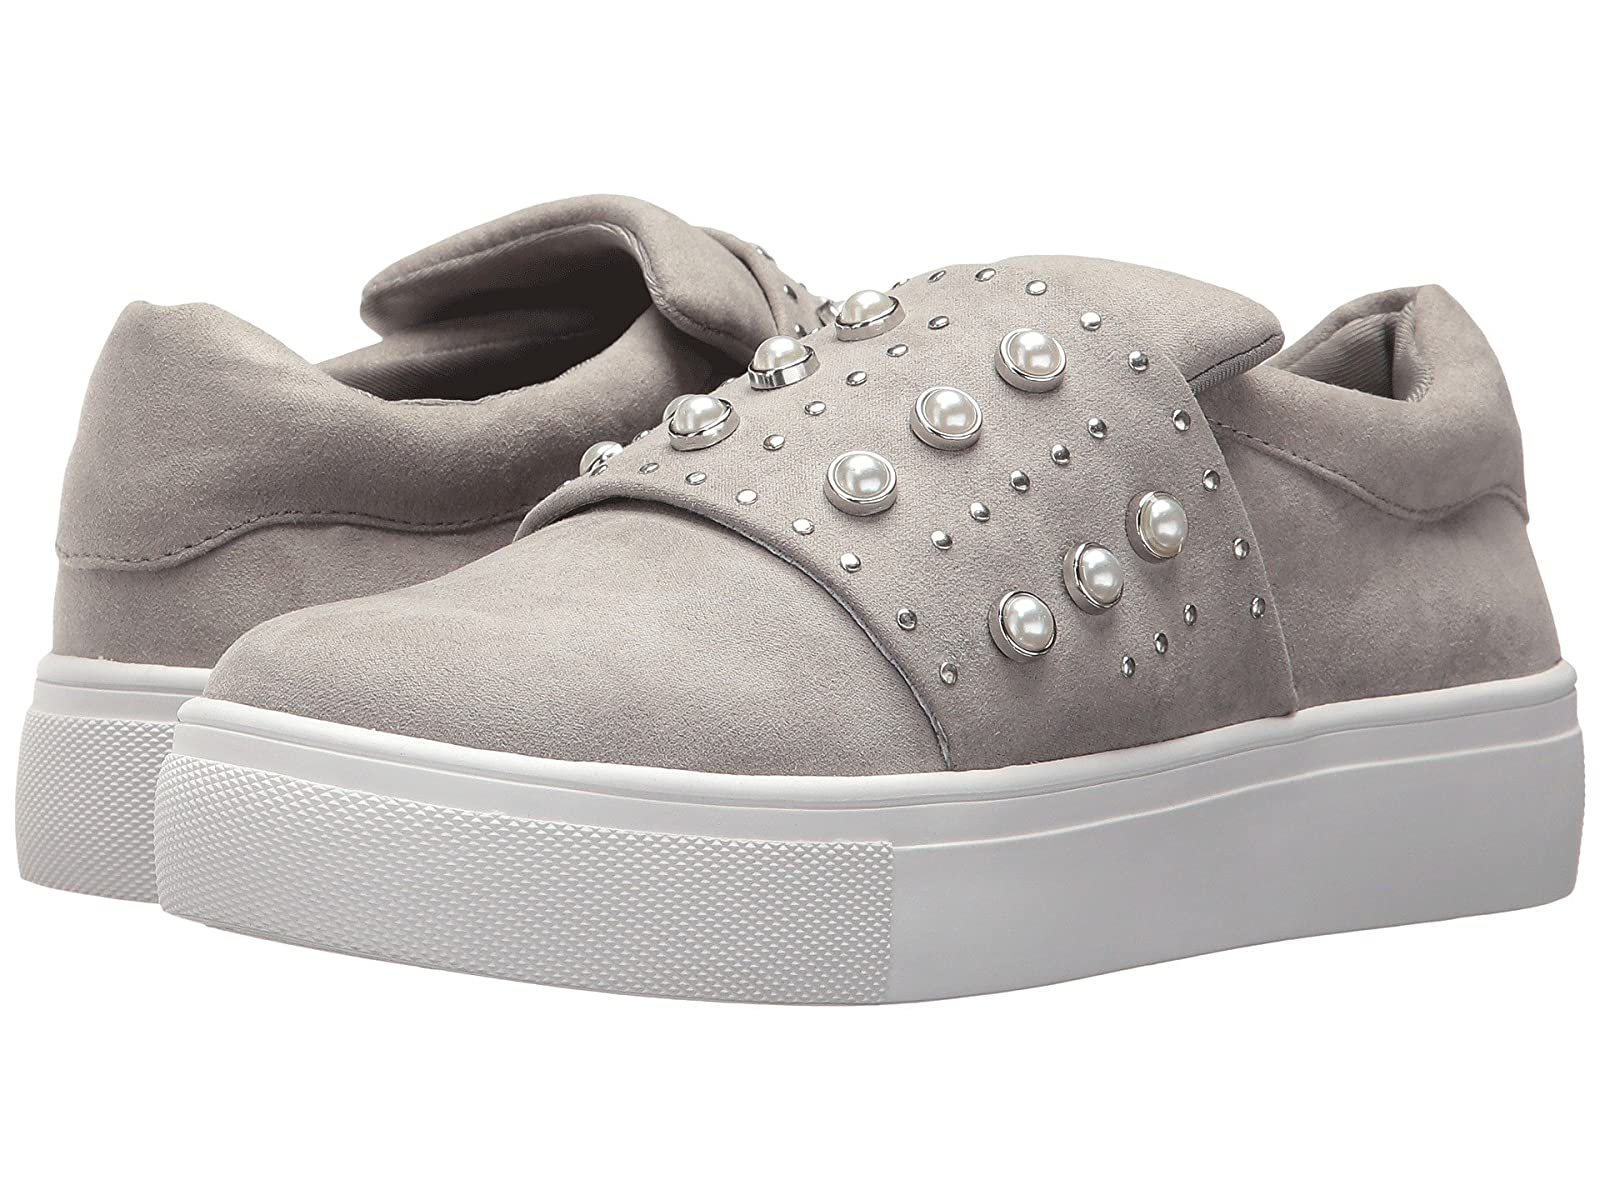 Steven DeylinCheap and distinctive eye-catching shoes